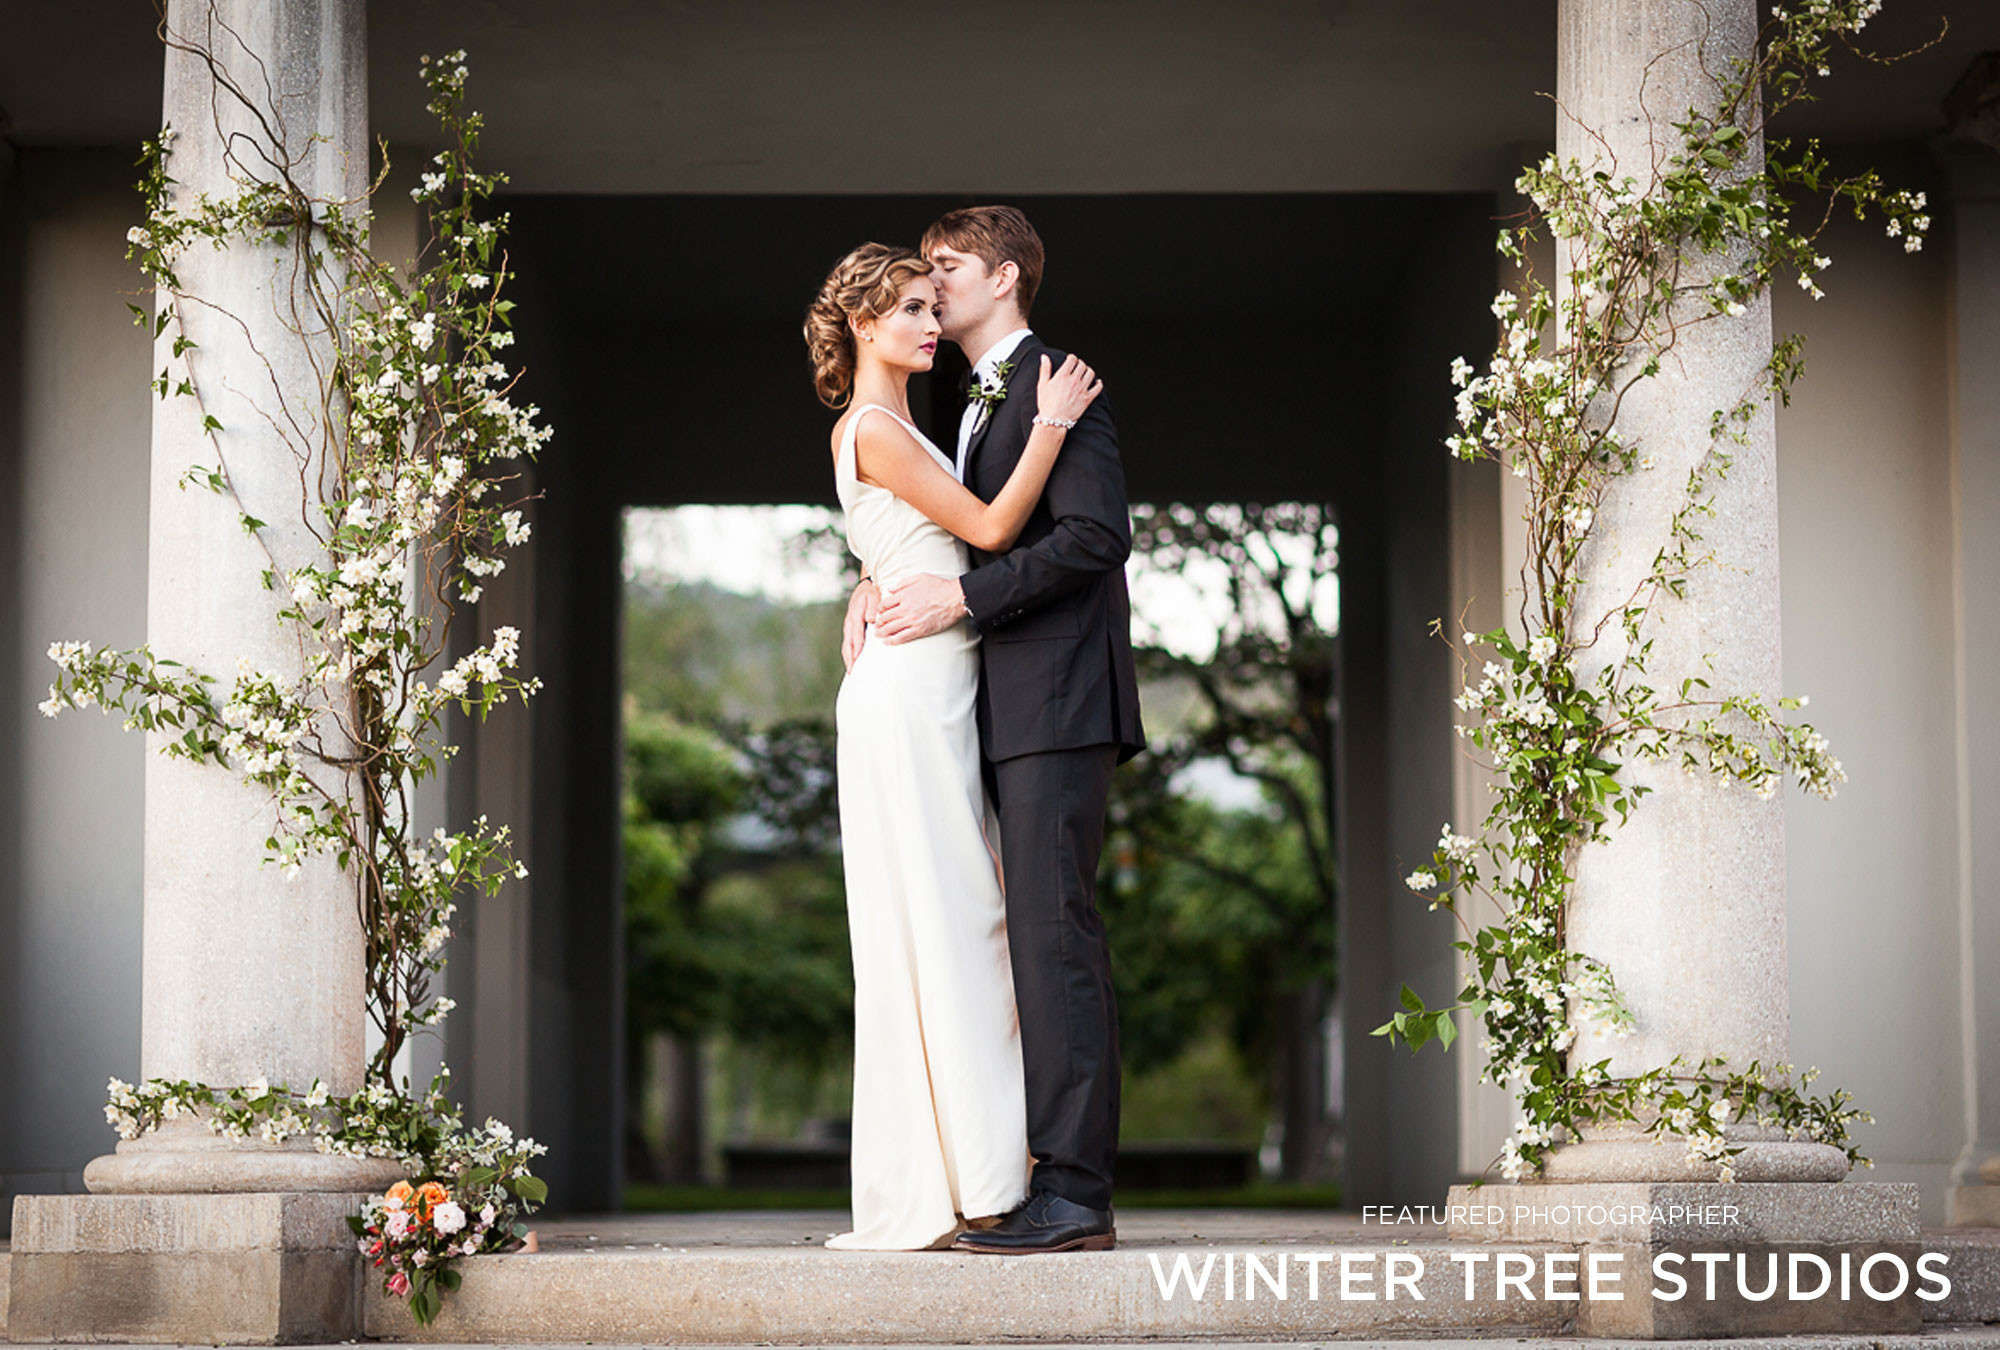 Winter Tree Studios - Featured Photographer